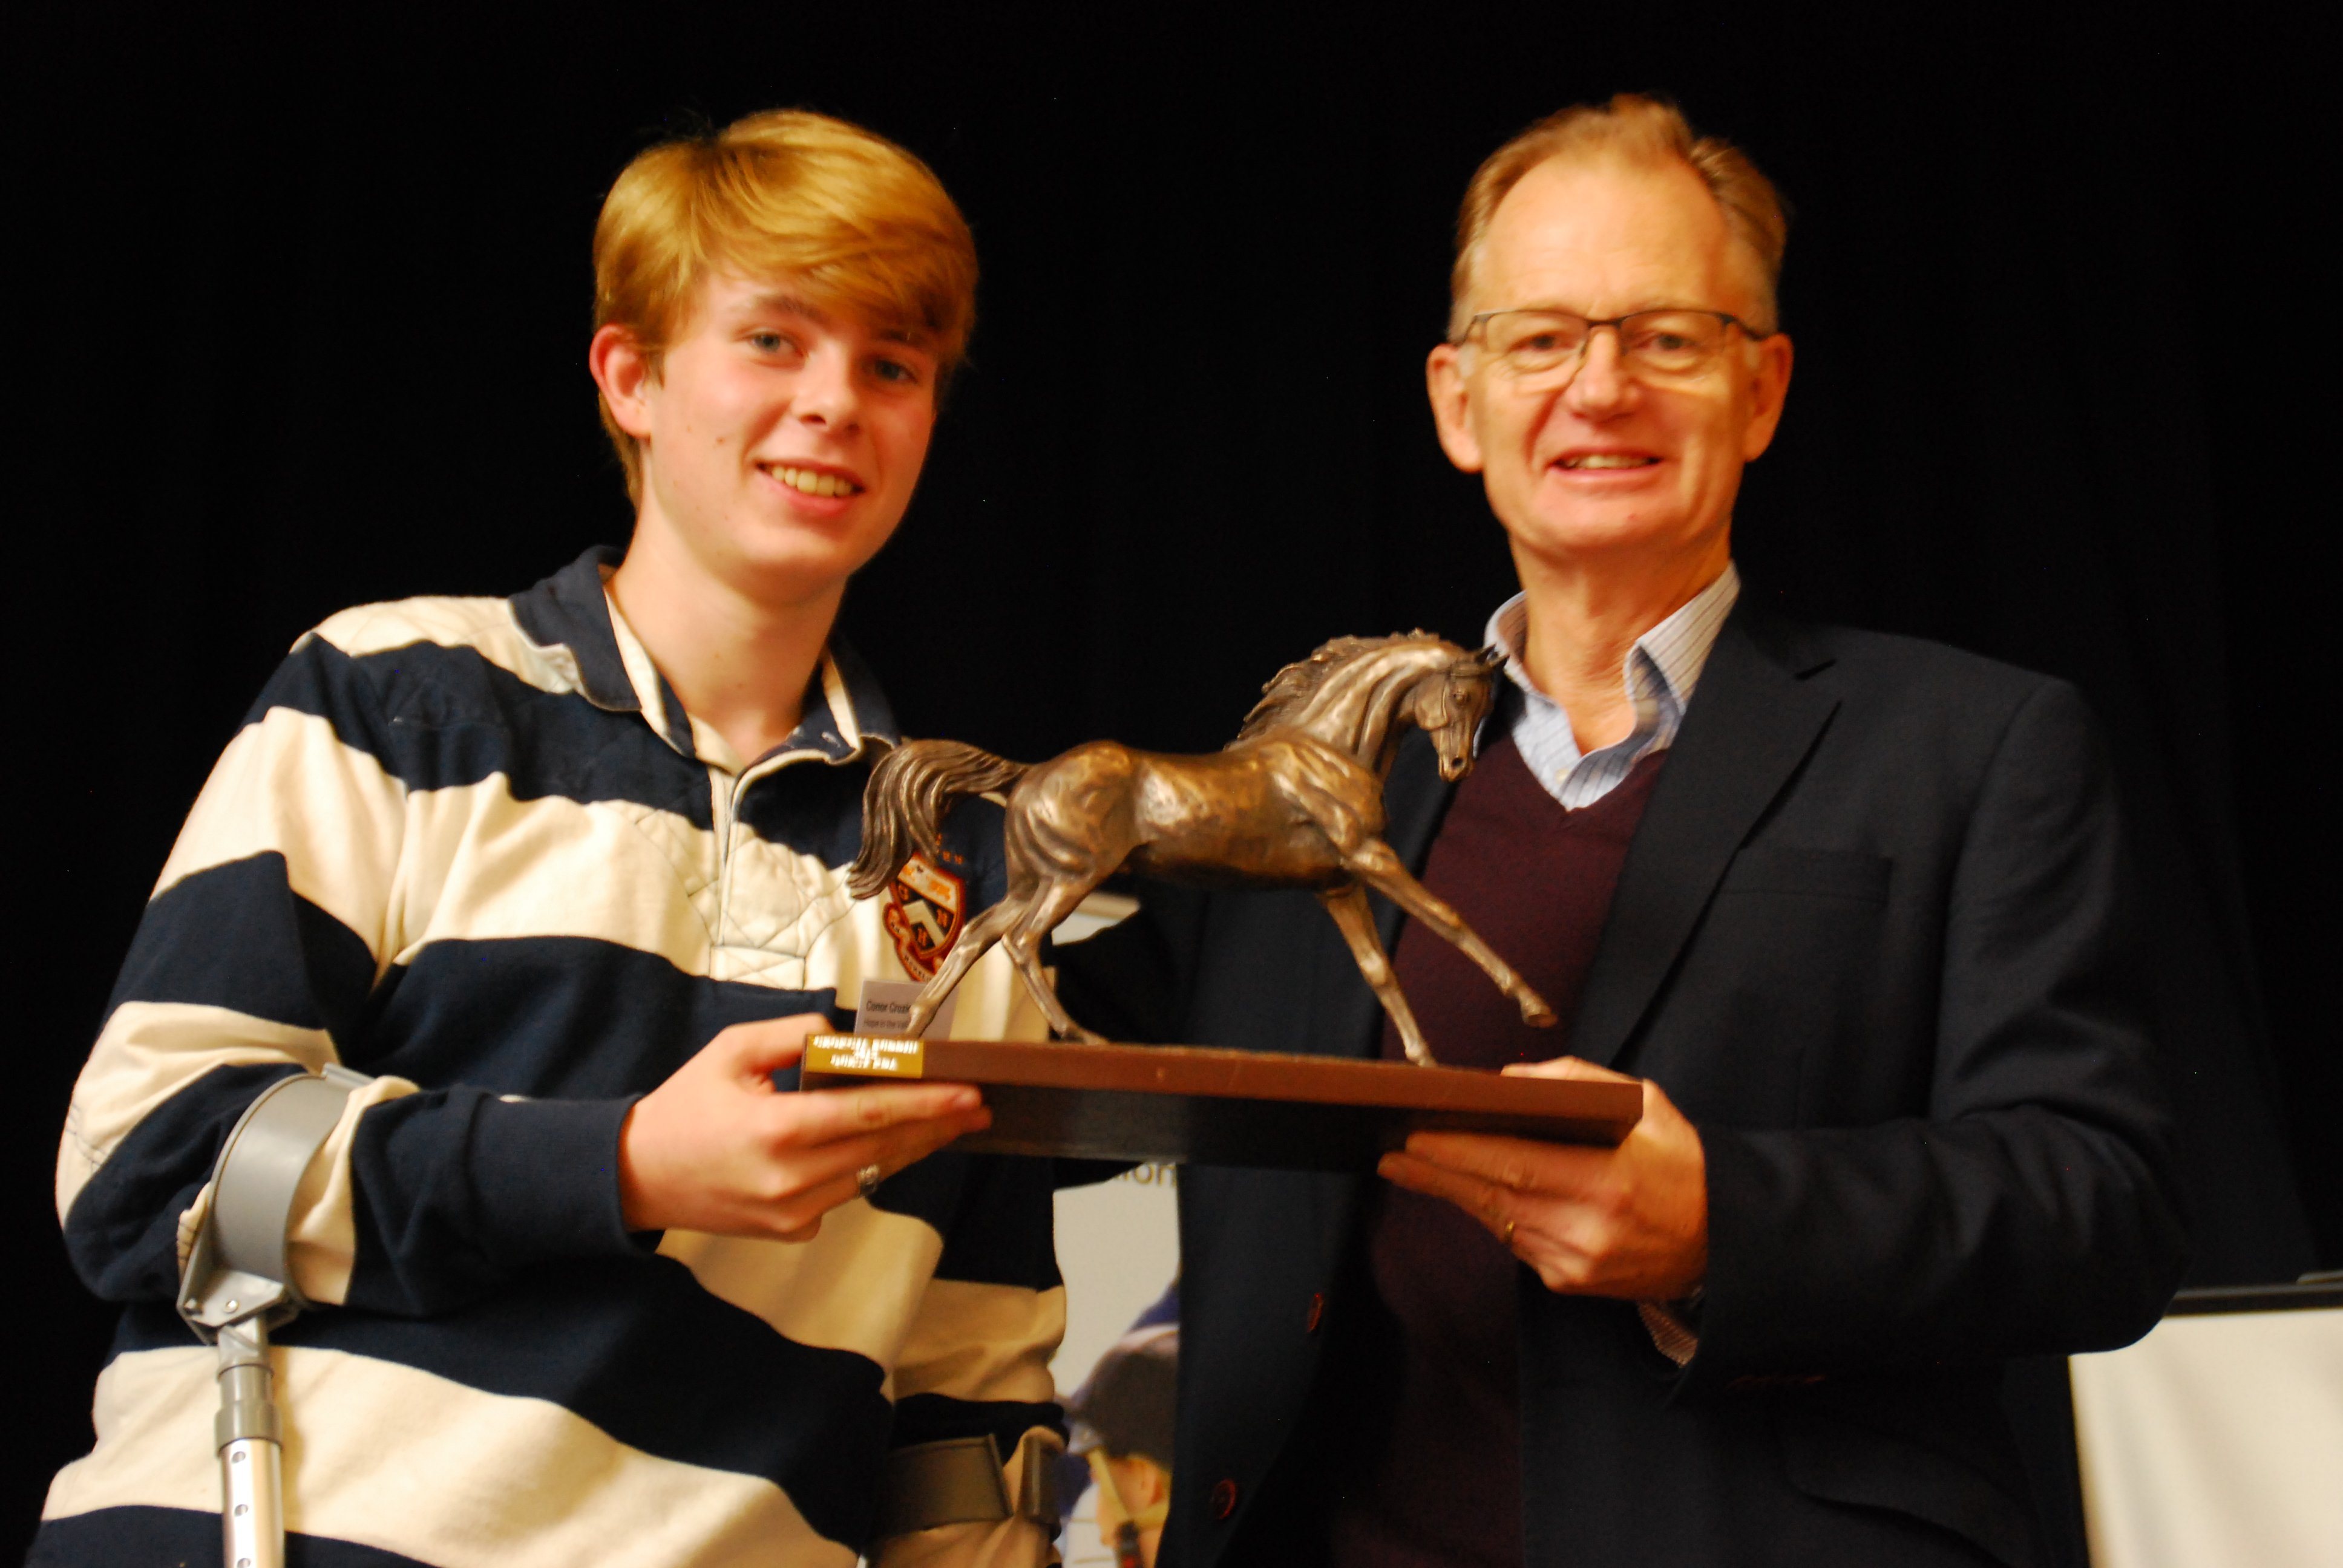 Photo showing Phillip Mumford presenting the Cowan Trophy to Conor Crozier as the RDA's 2019 Young Volunteer of the Year